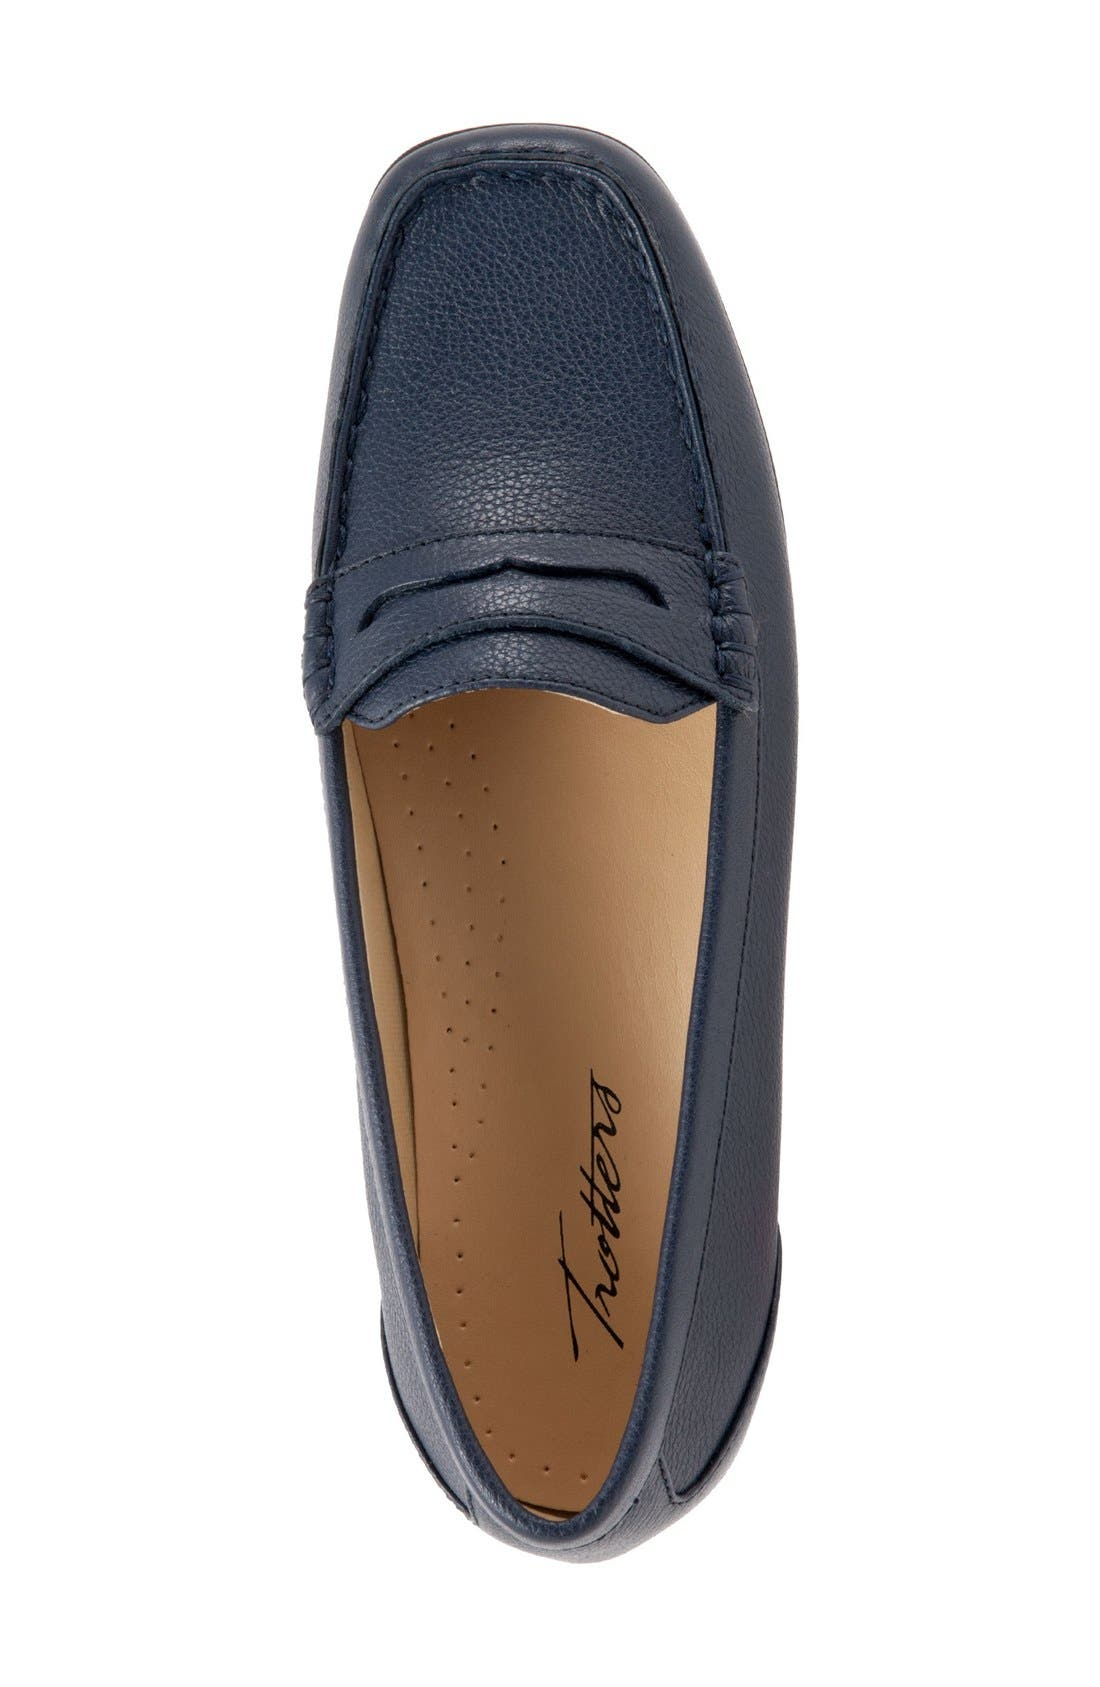 'Staci' Penny Loafer,                             Alternate thumbnail 3, color,                             Navy Leather